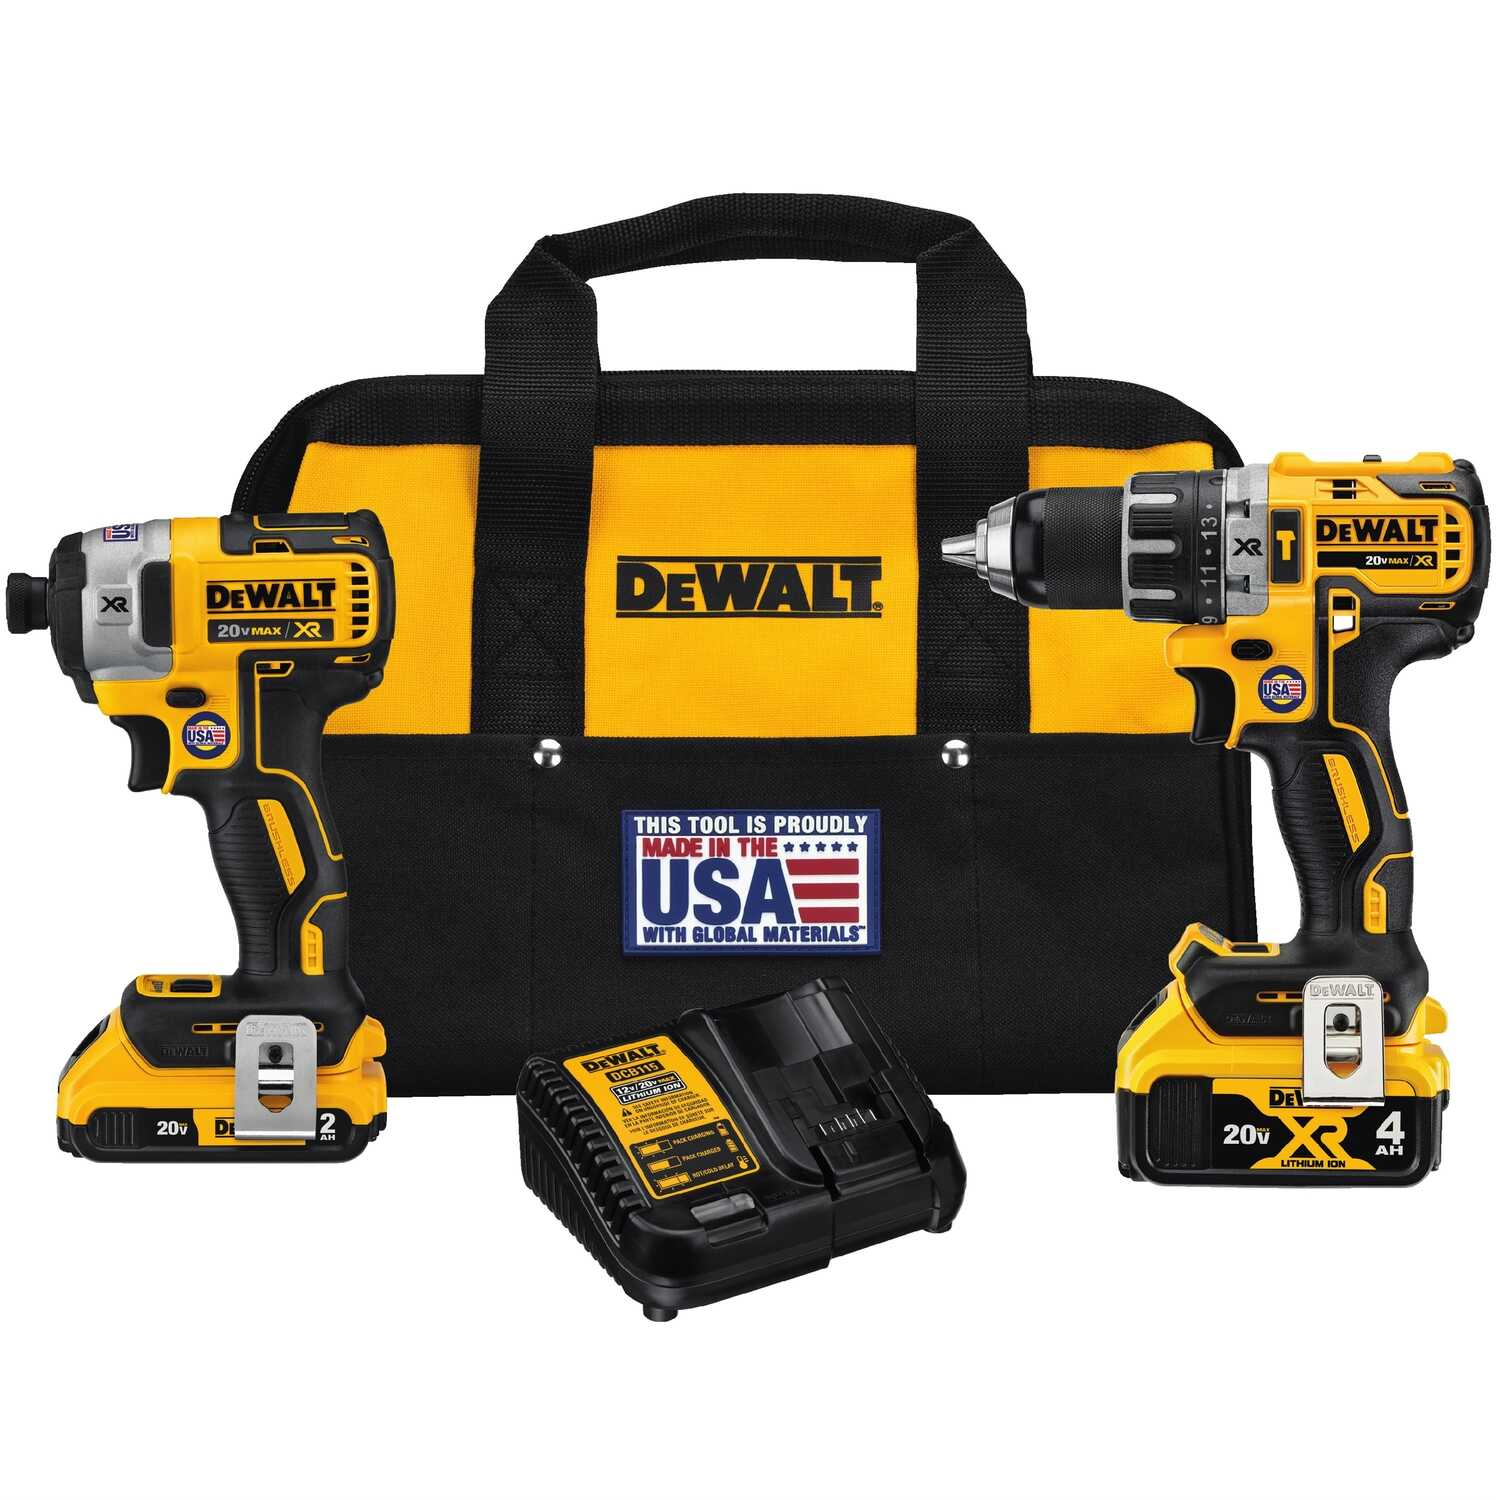 DeWalt  20V MAX XR  20V MAX  Cordless  Brushless 2 tool Compact  Hammer Drill and Impact Driver Kit